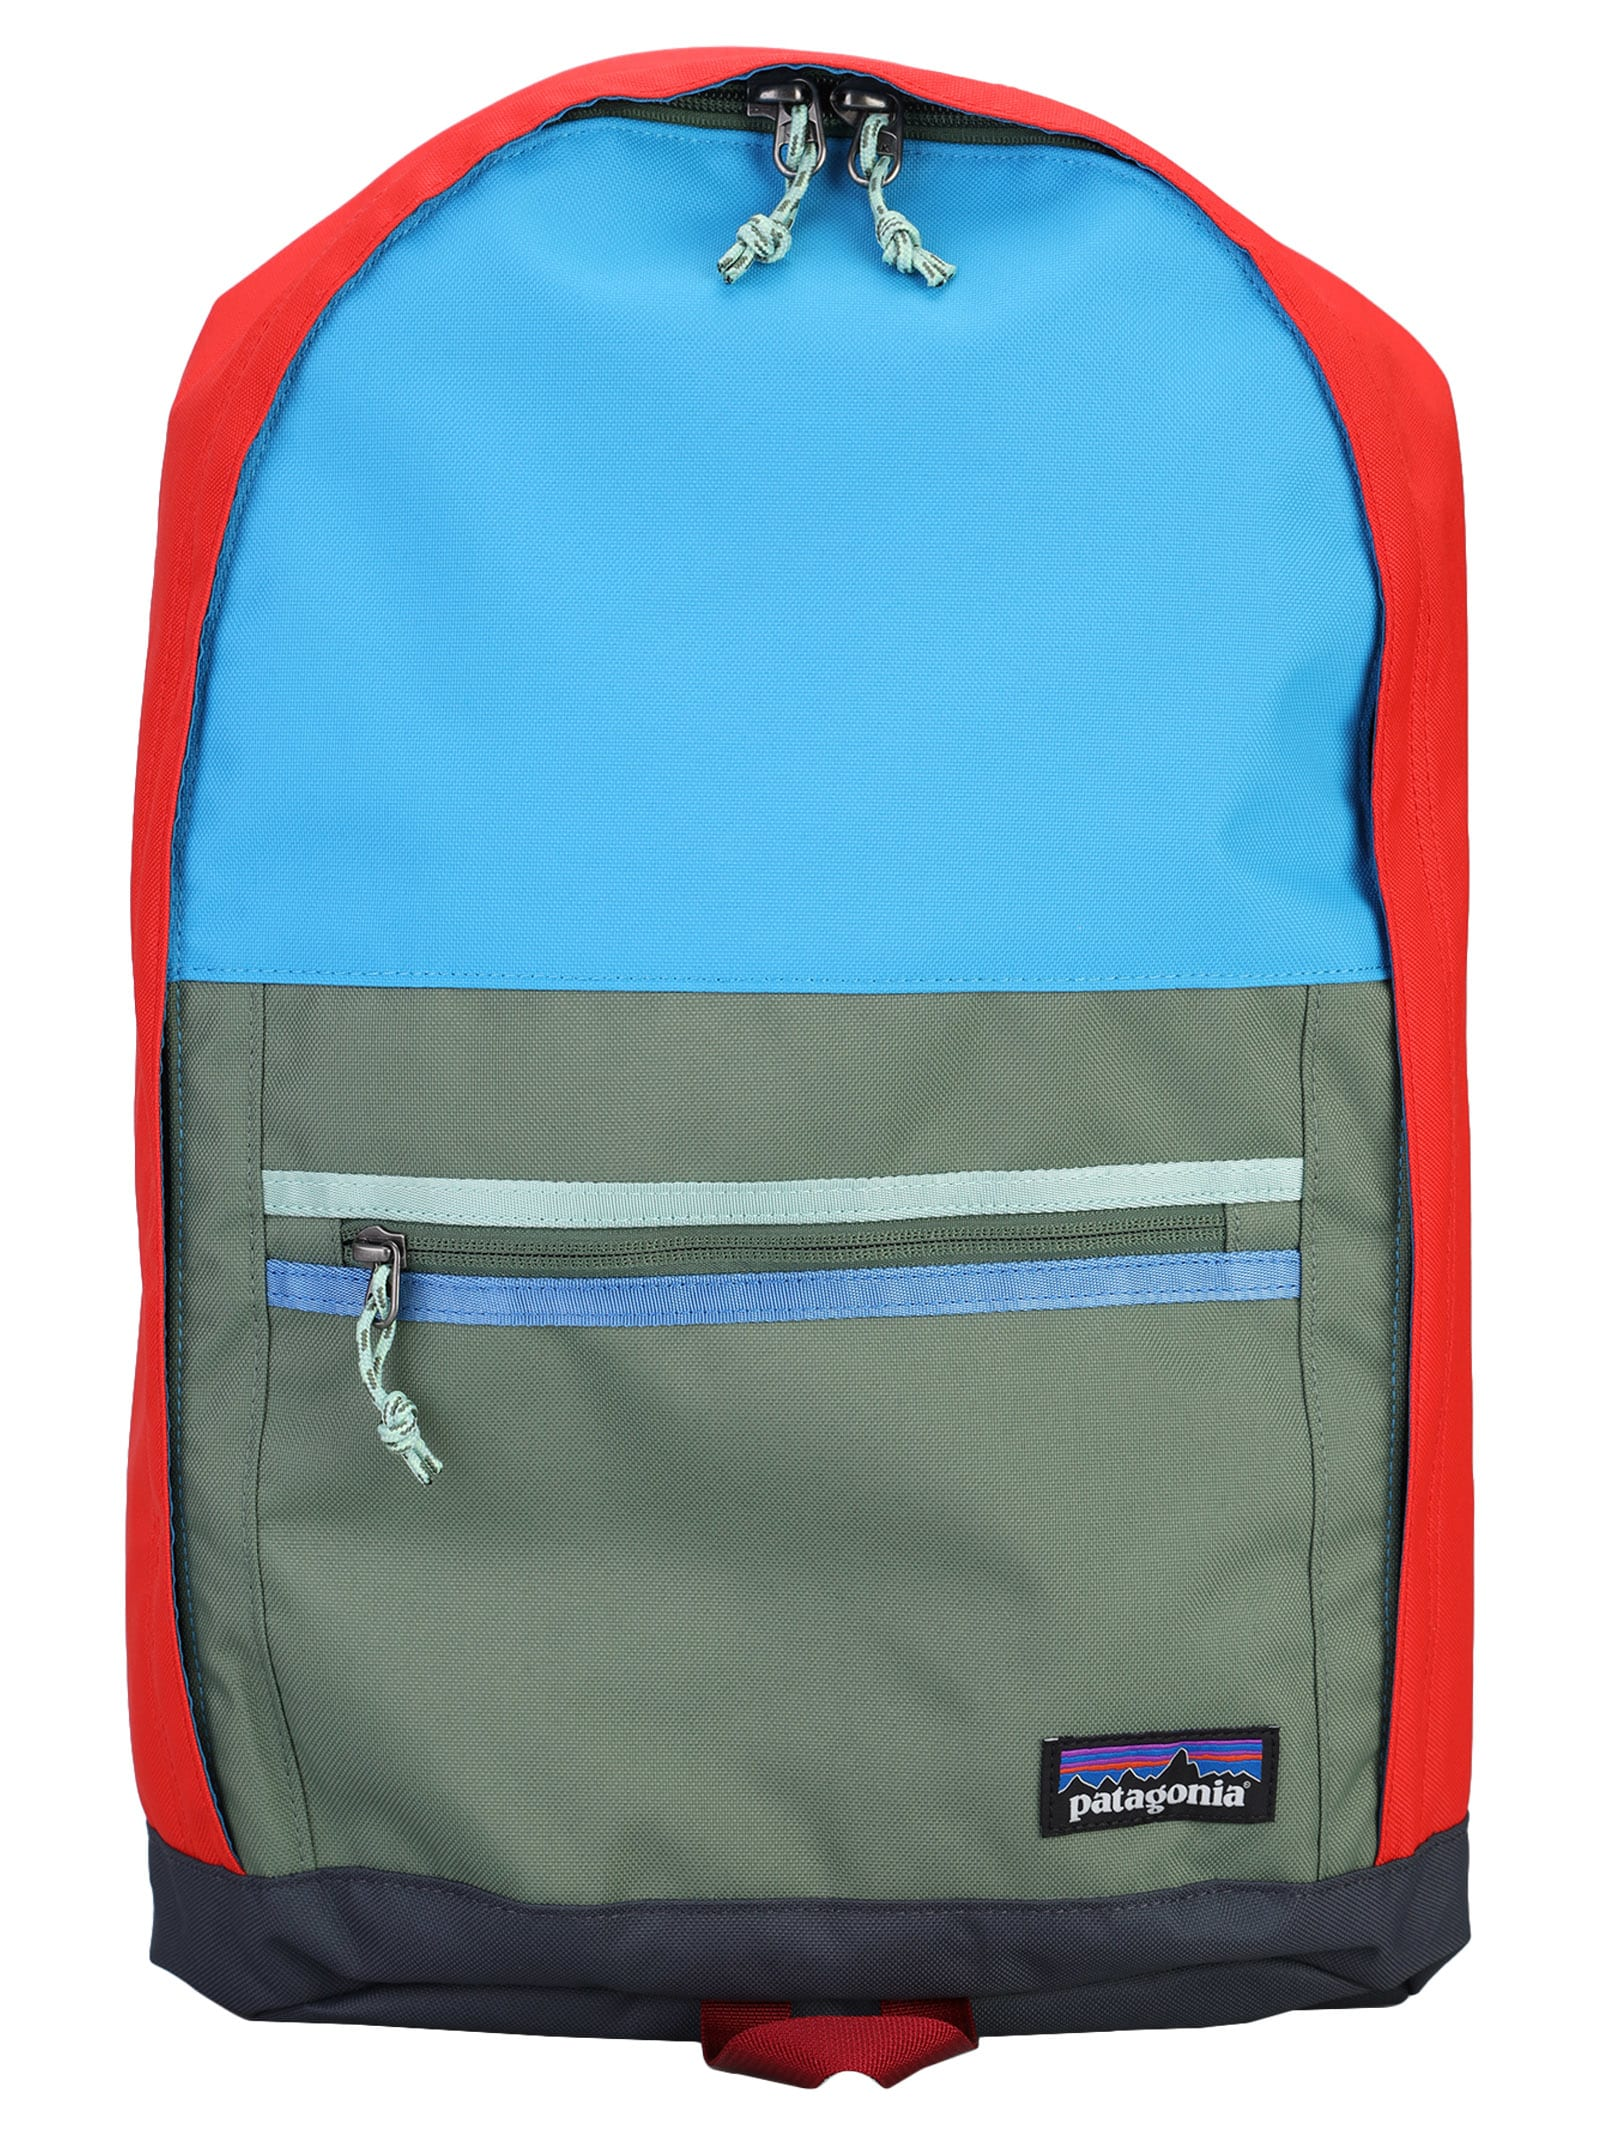 Multicolor Arbor Daypack By Patagonia. Featuring: - Top Handle; - Double Way Top Zip Fastening; - Front Zip Pocket; - Logo Patch To The Front; - Adjustable Shoulder Straps; - Internal Slip Pocket. Composition: 100% RECYCLED POLYESTER